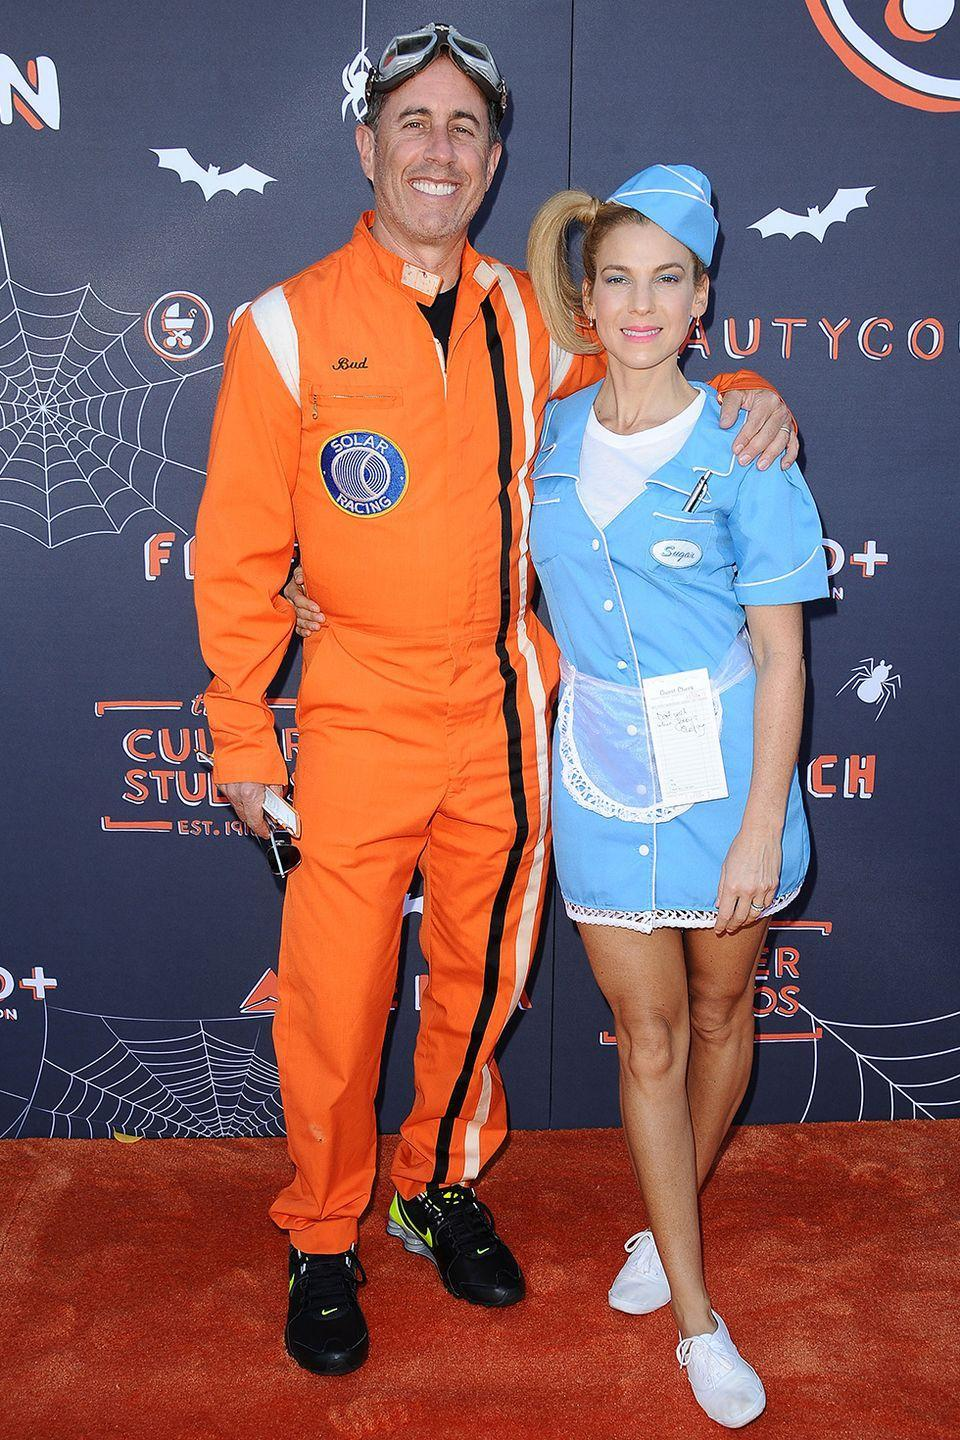 <p>In 2017, Jerry Seinfeld and wife Jessica Seinfeld hit the GOOD+ Foundation's 2nd annual Halloween bash at Culver Studios dressed as a pilot (of sorts) and stewardess pair. Jessica looks more like a waitress...but, oh well.</p>